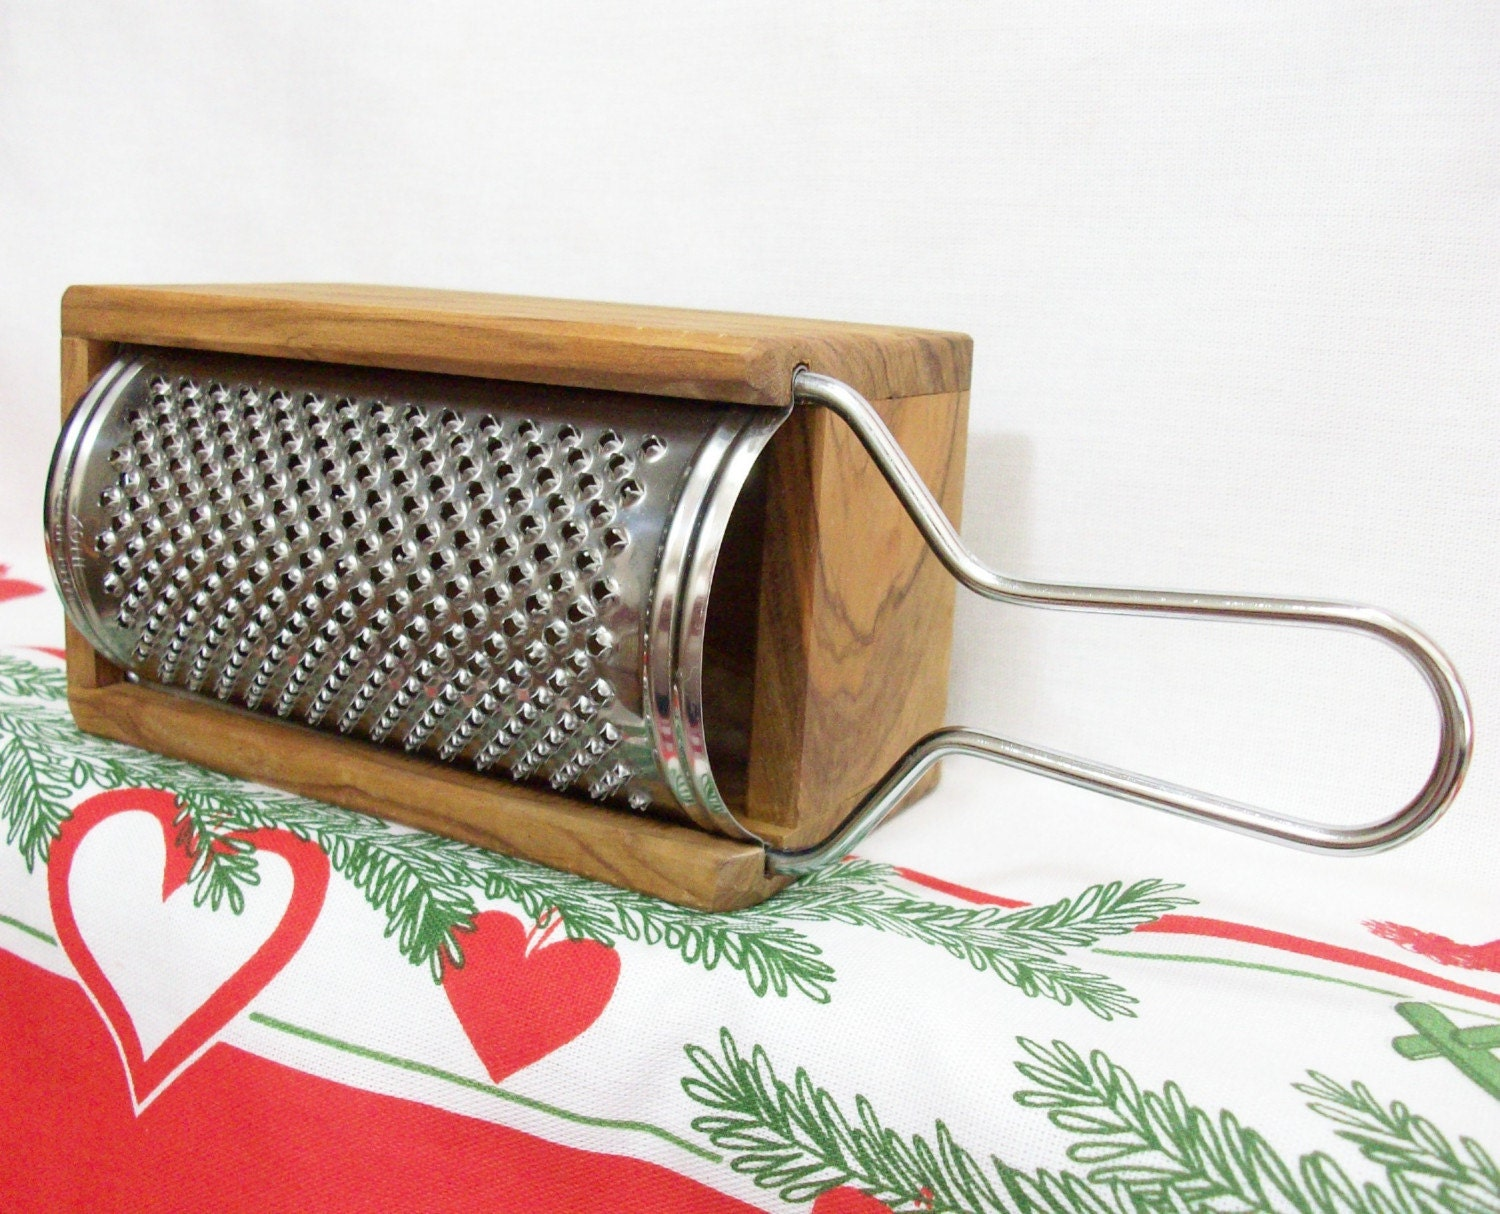 Vintage Italian Cheese Grater With Box By Peachychicboutique